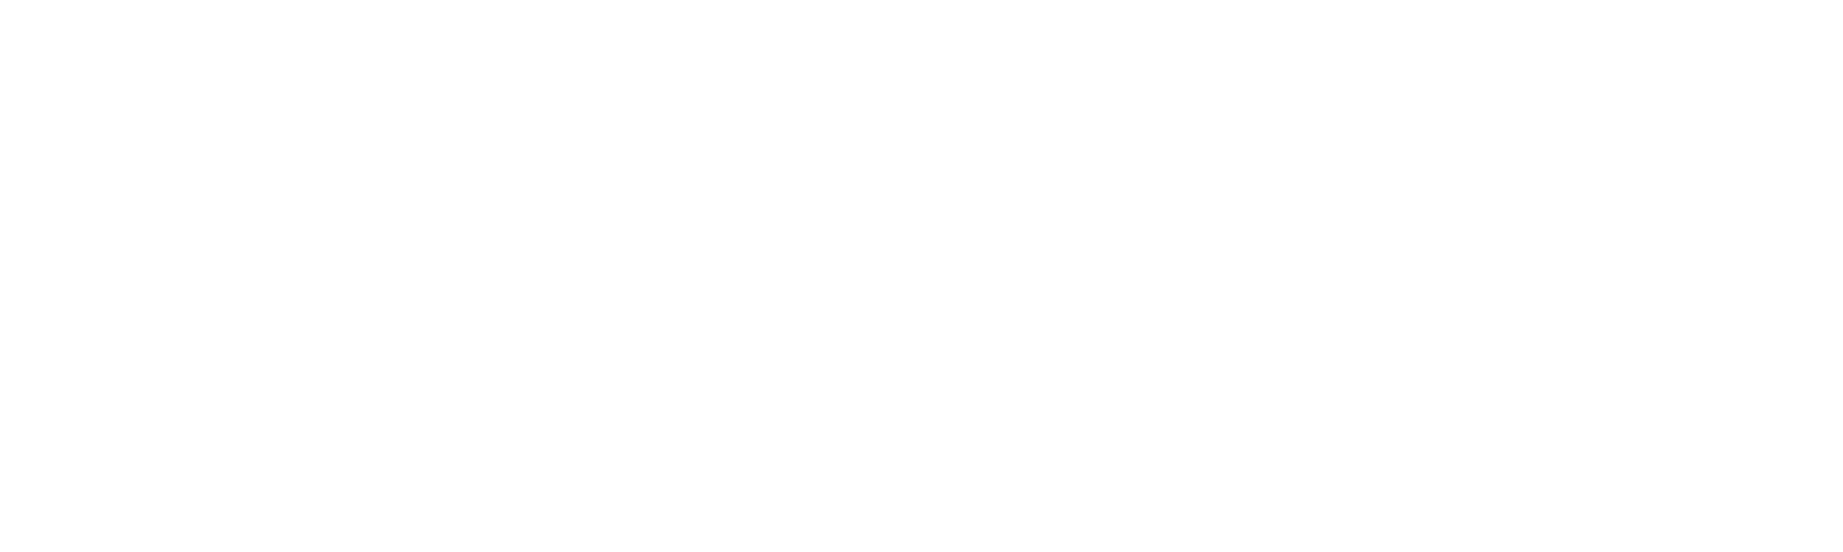 WhyBible? 2017